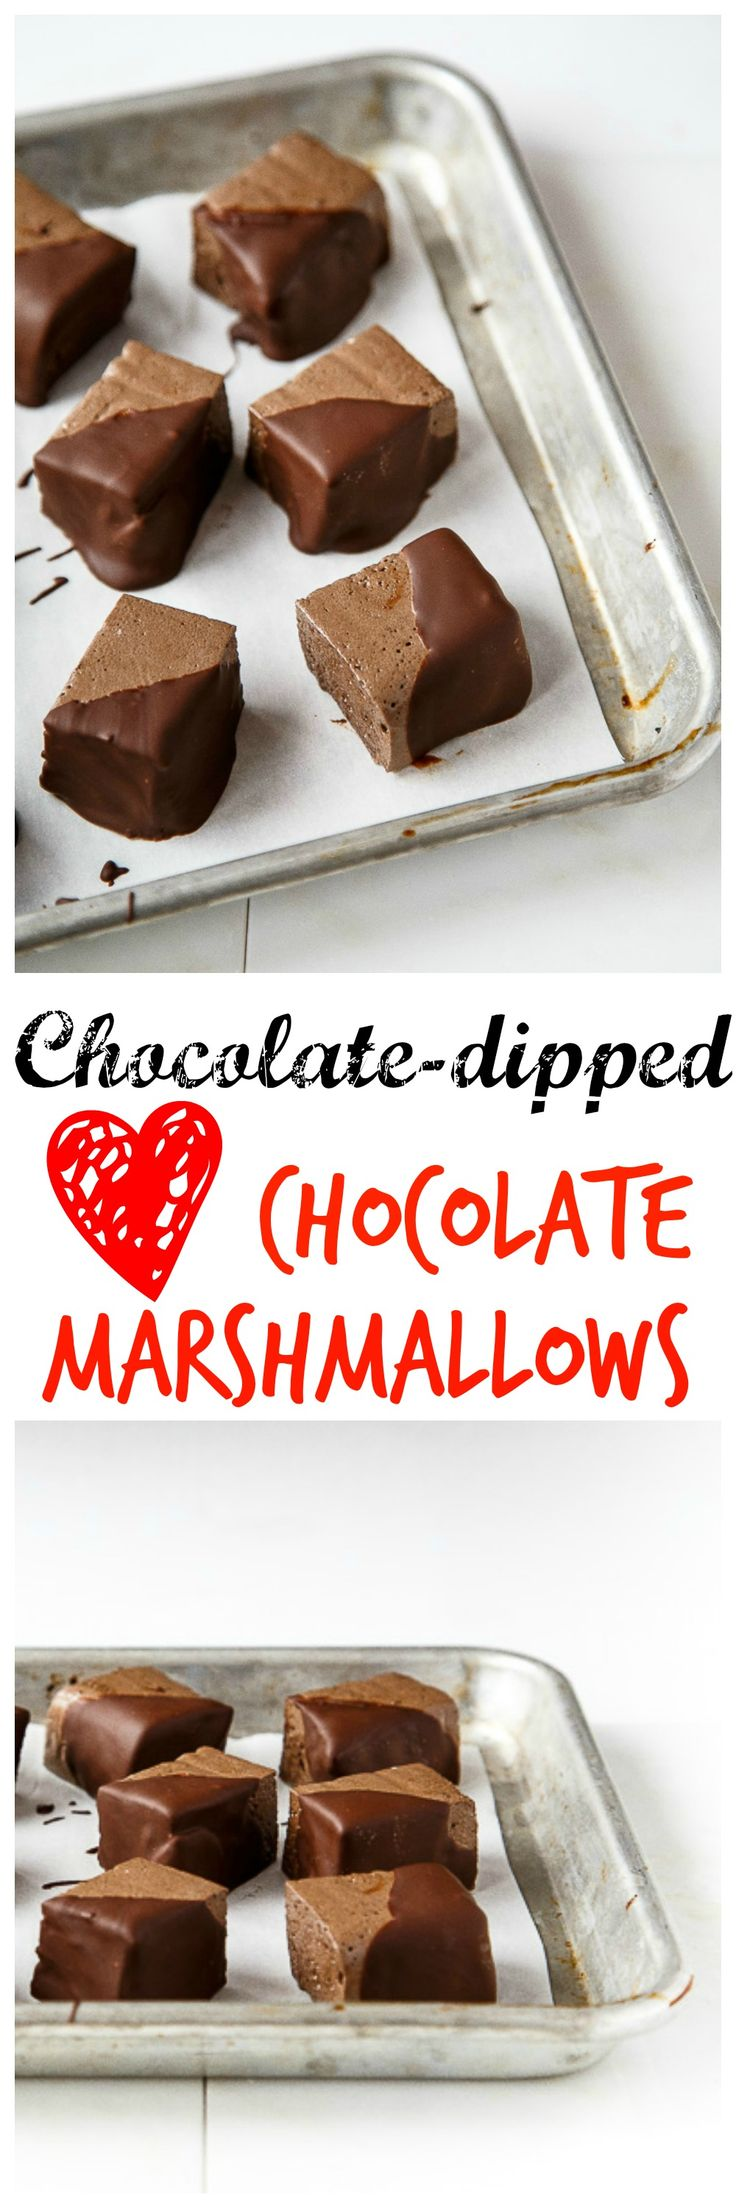 Chocolate dunked chocolate marshmallows. Is that enough chocolate for Valentine's Day dessert for you? ;)